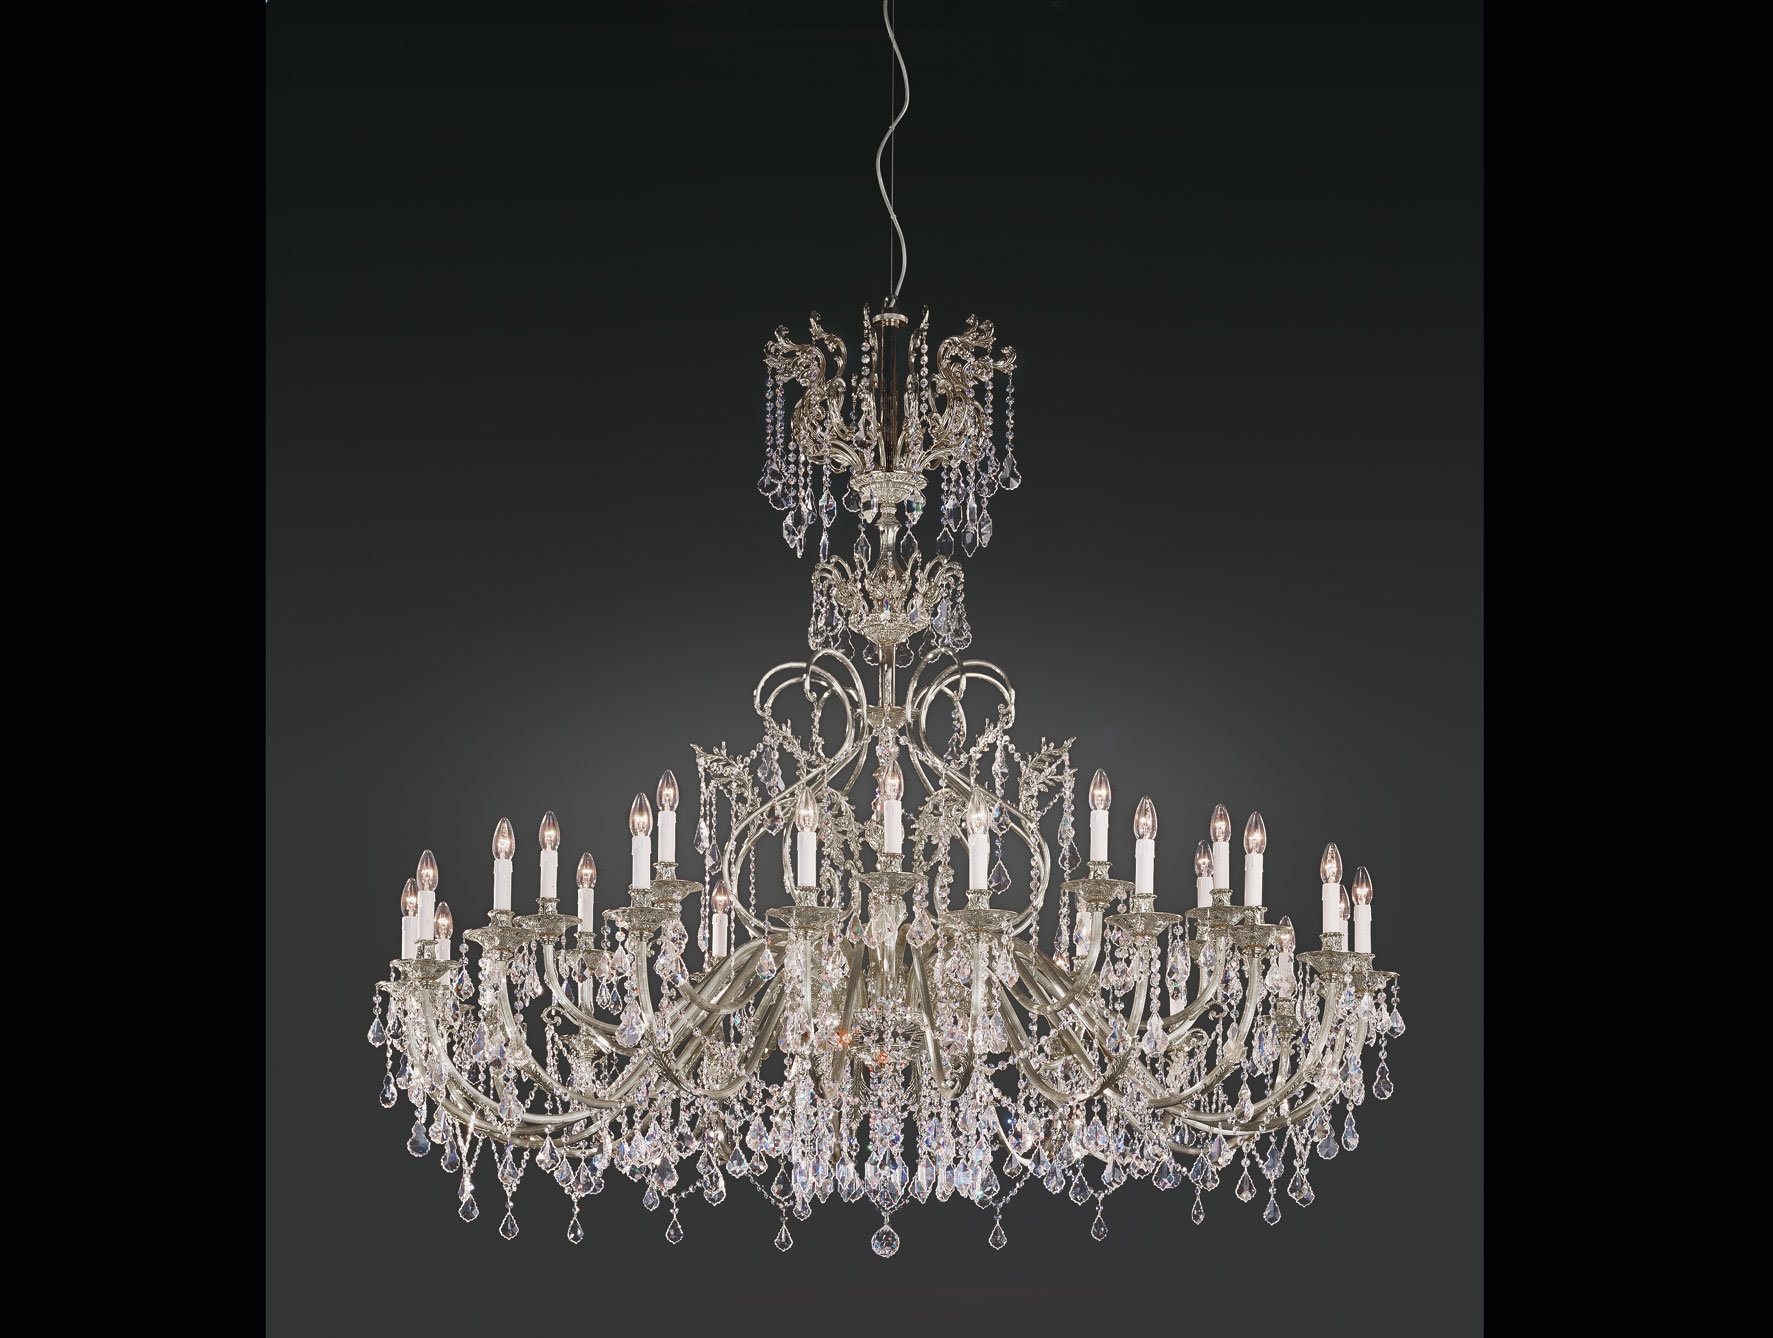 Swarovski Crystal Chandelier With Regard To Costco Chandeliers (View 14 of 15)